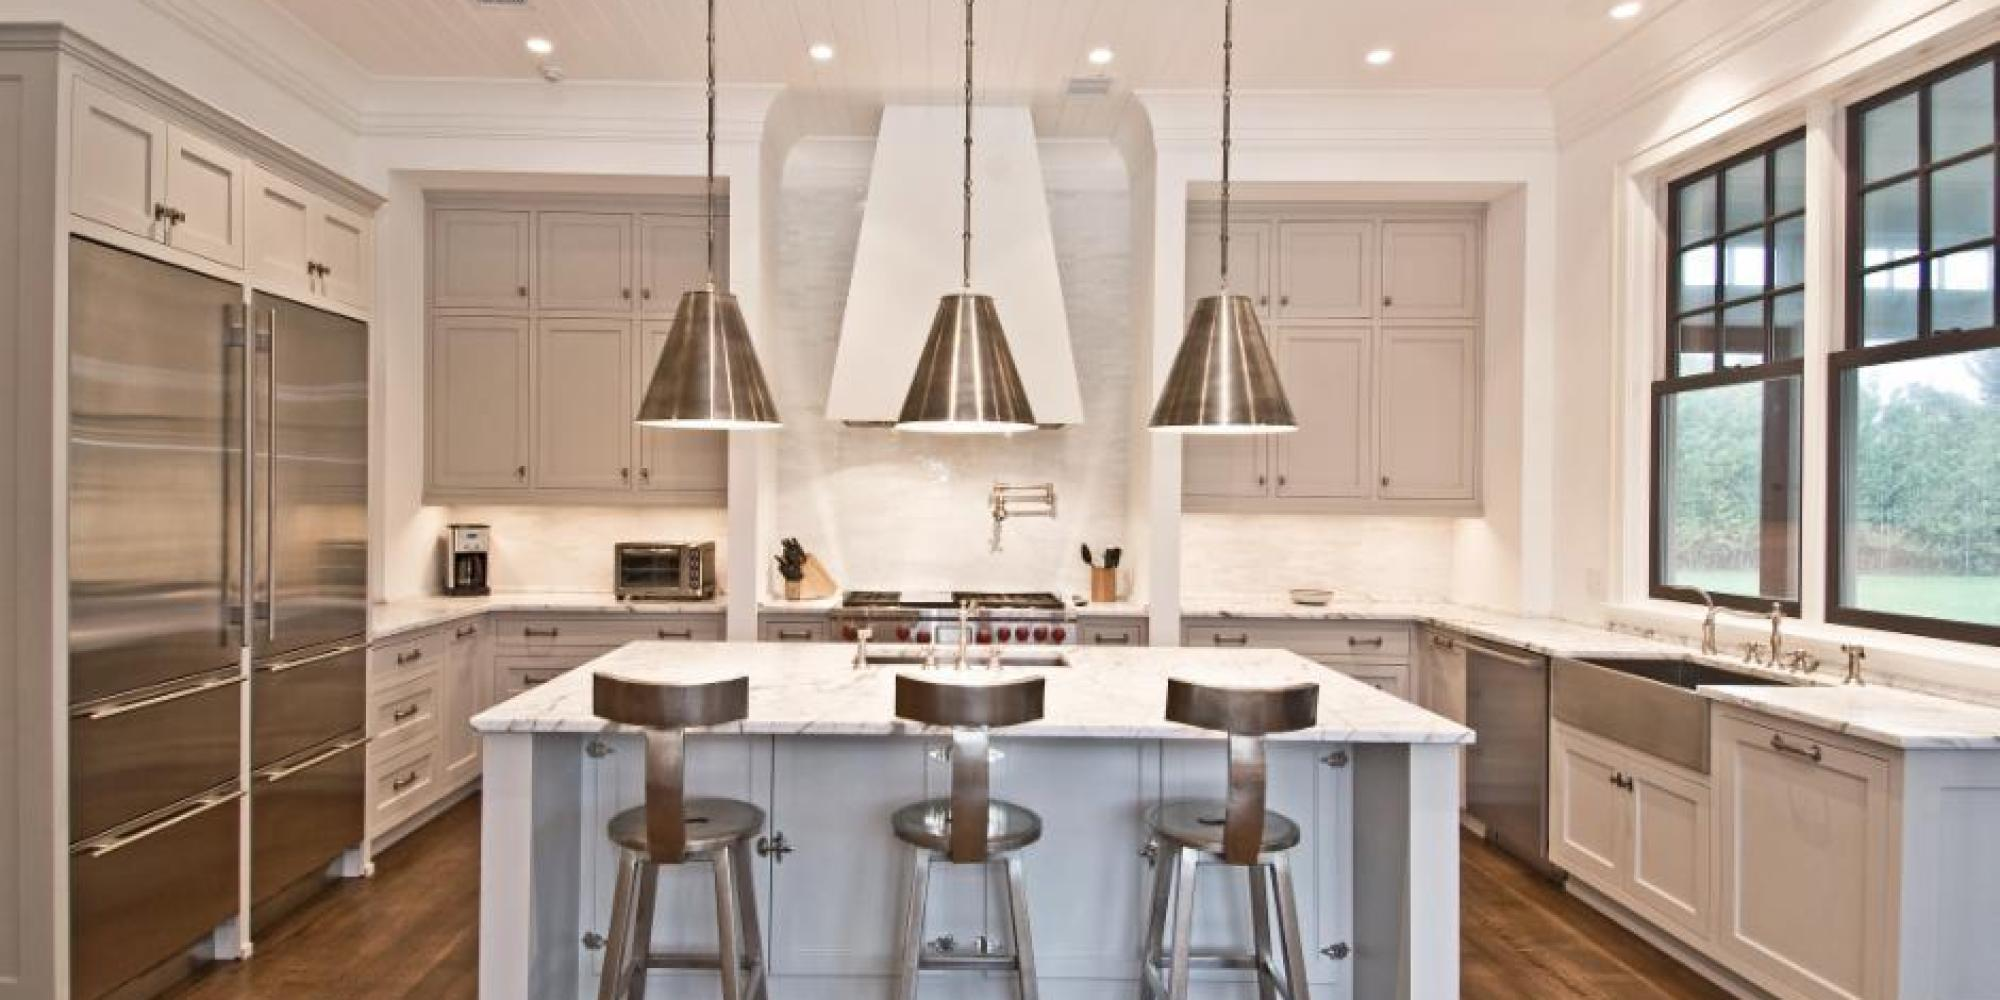 paint colors for kitchens the best paint colors for every type of kitchen | huffpost LXUTIES